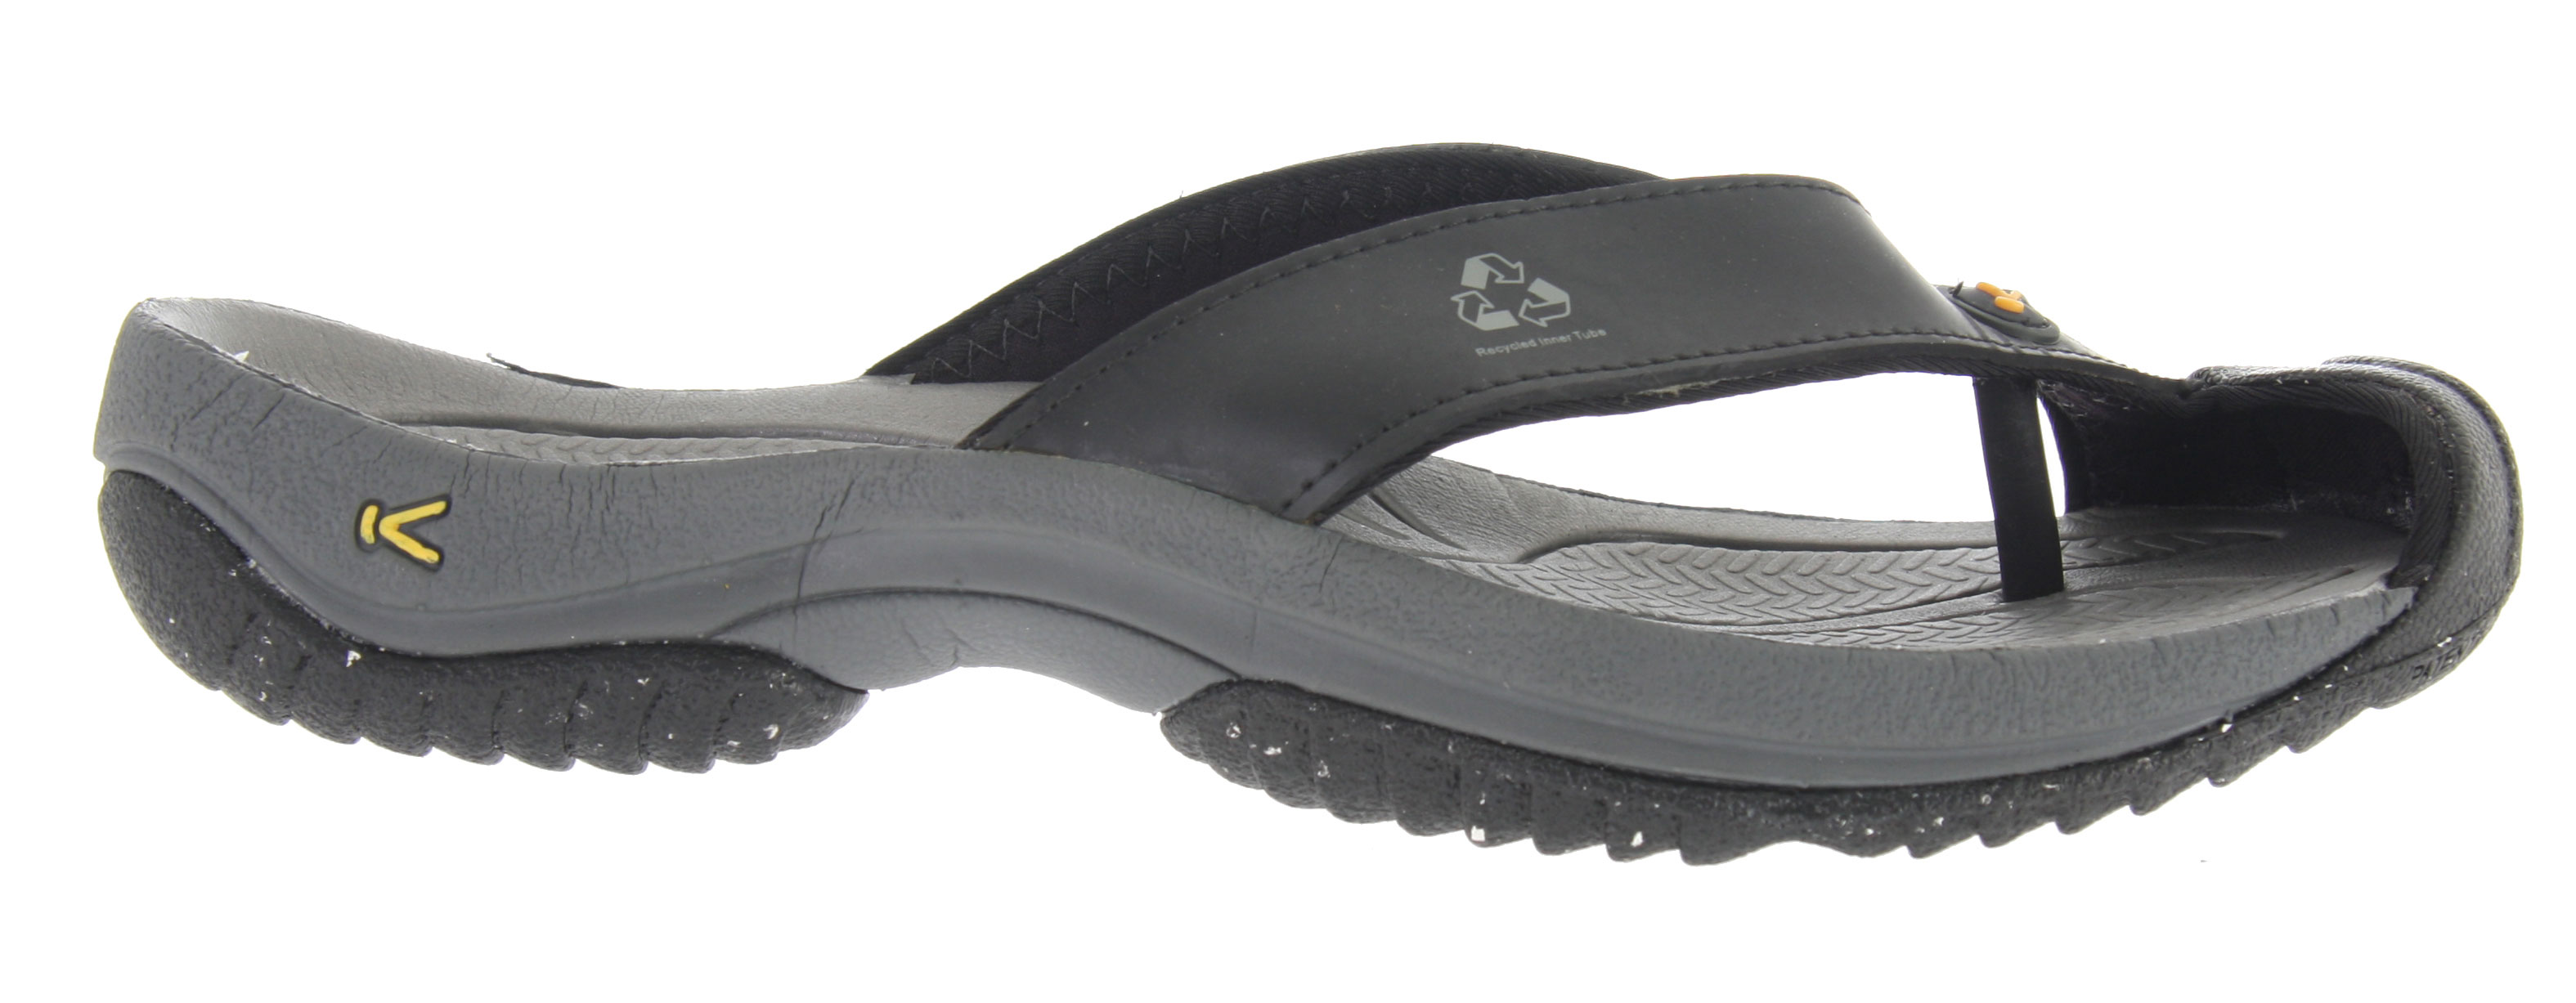 Surf Discover the meaning of kicking back with the Waimea H2 sandal from KEEN. The sporty style features patented toe protection and a lightweight rubber outsole. The EVA midsole absorbs shock as you stride toward the beach chair that's calling your name.Key Features of the Keen Waimea H2 Sandals: Weight: 7.50 oz / 212.621 grams Fit Tip: We find this style runs pretty true to size. Lining: Hydrophobic mesh Upper: Polyester webbing Rubber: Non-marking rubber outsole Activities: Beach Type: Sandals Weather: Wet - waterproof, Warm sandals AEGIS Microbe Shield Treated SBR Lining Compression molded EVA midsole Metatomical EVA Footbed with Microban Non-marking, two-part, lightweight outsole Patented toe protection Quick drying polyester webbing straps - $37.95